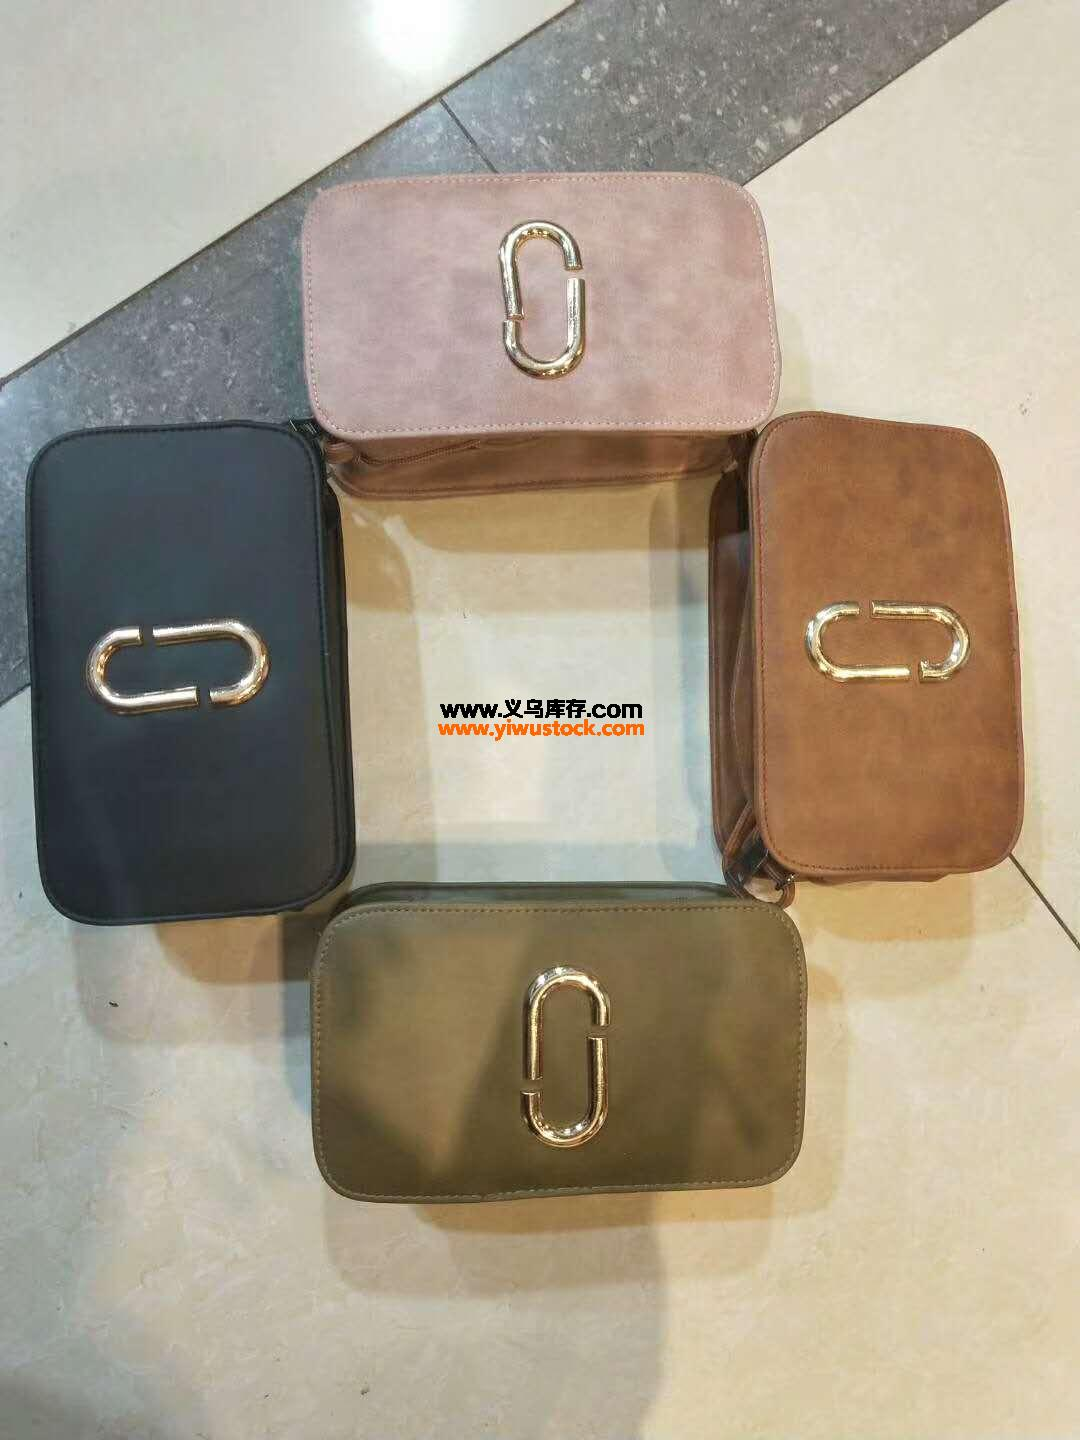 700个小包全清6元10/5000   It's 6 yuan for all 700 small bags